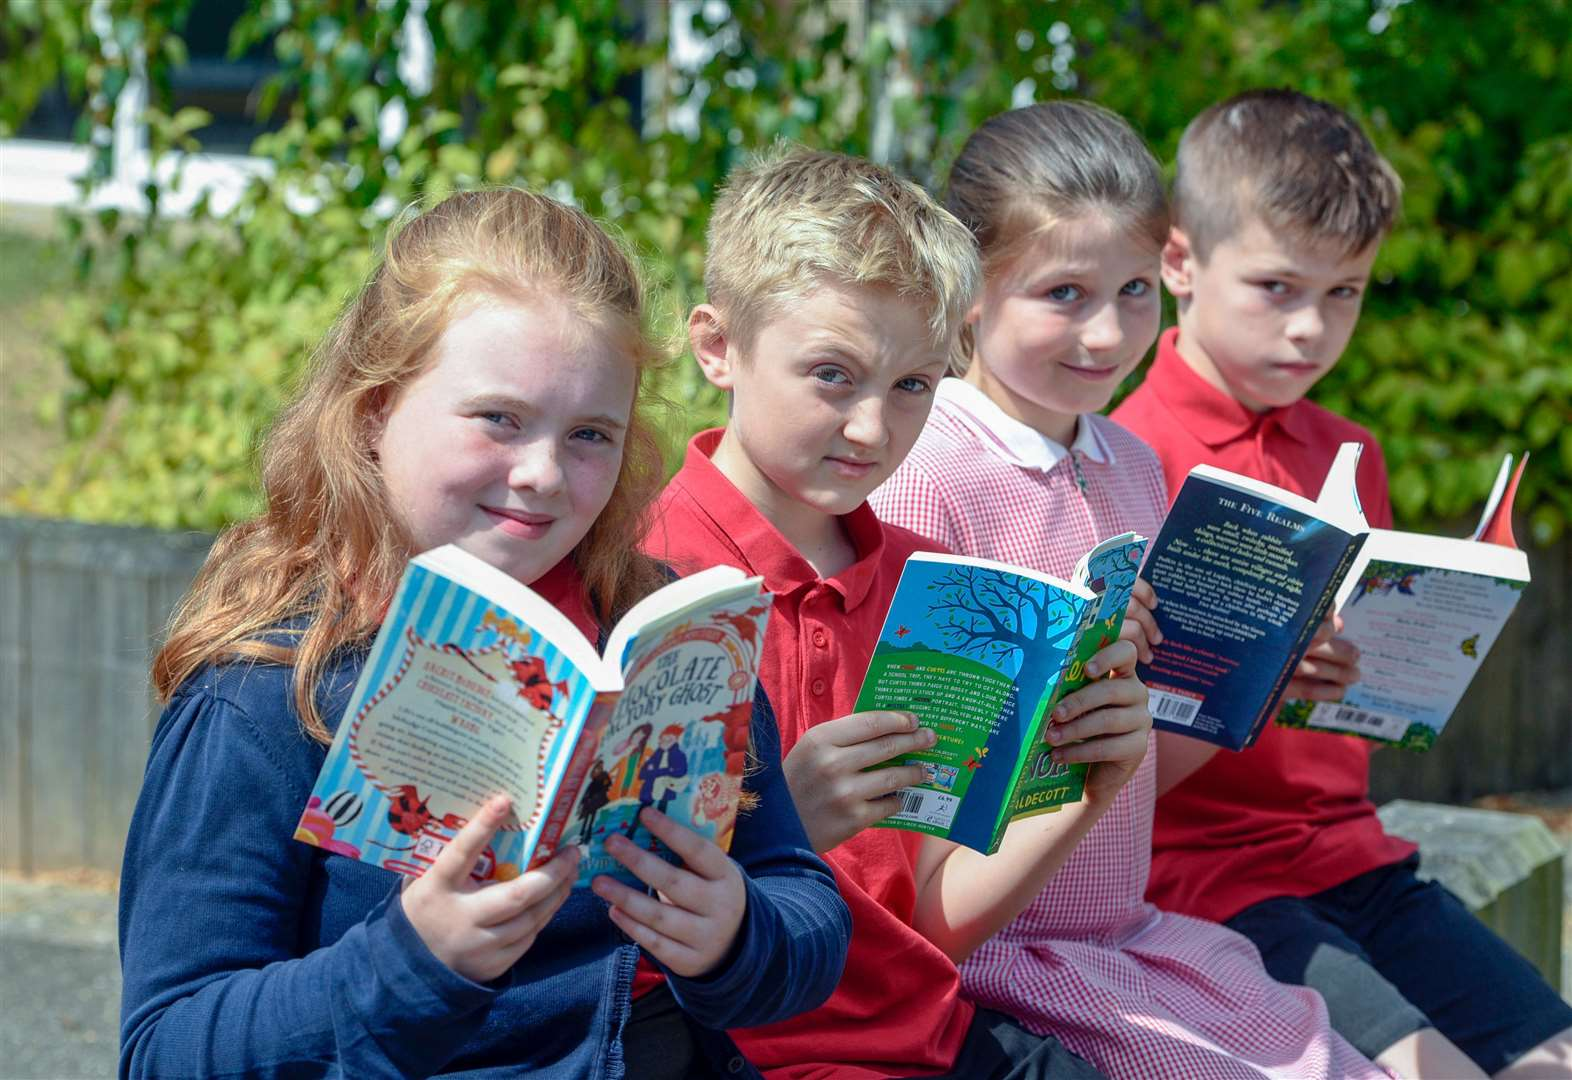 Steve Barclay MP awards prizes for summer reading champions in March, Chatteris and Wisbech